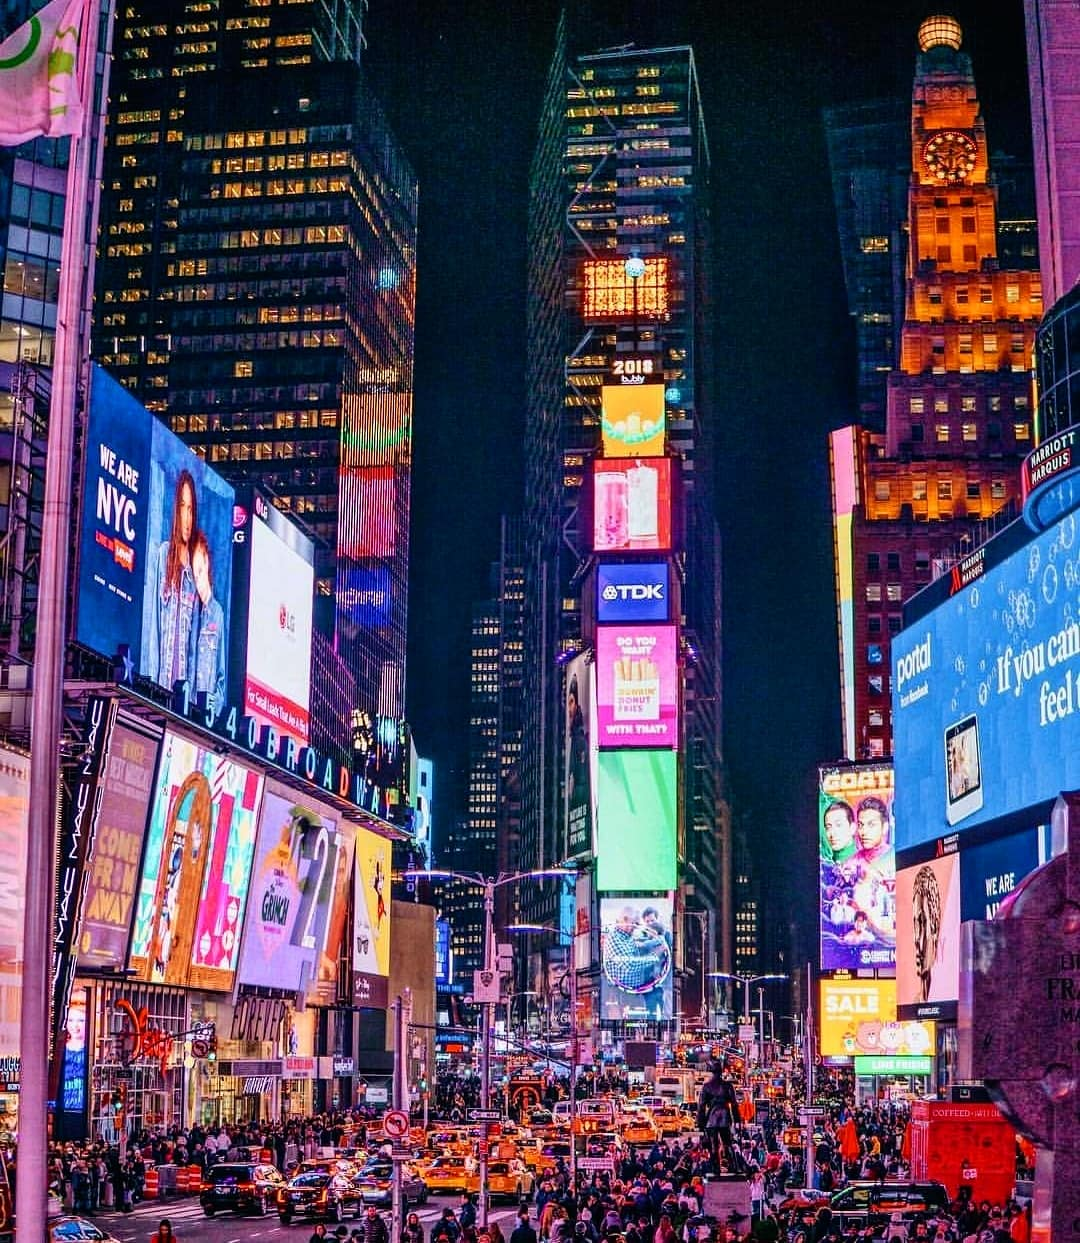 times Square - 5 giorni a new york dolcissima stefy